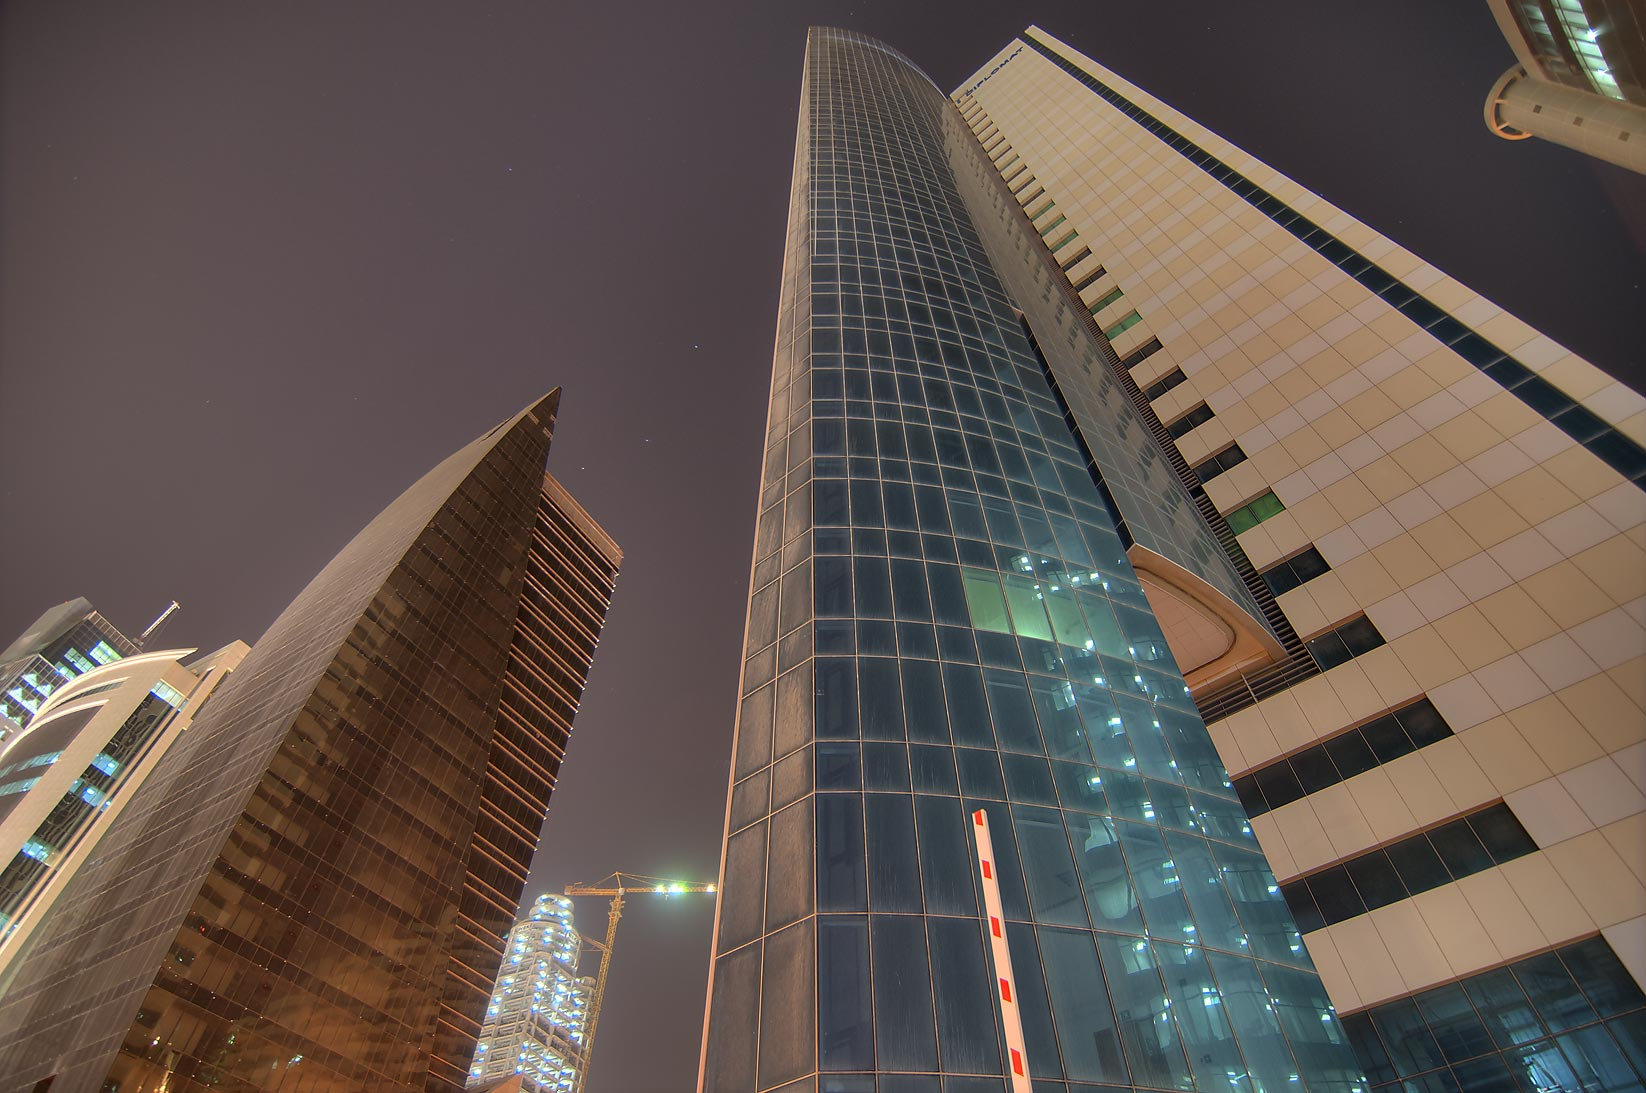 Abdulhani Commercial and RasGas towers in West Bay. Doha, Qatar